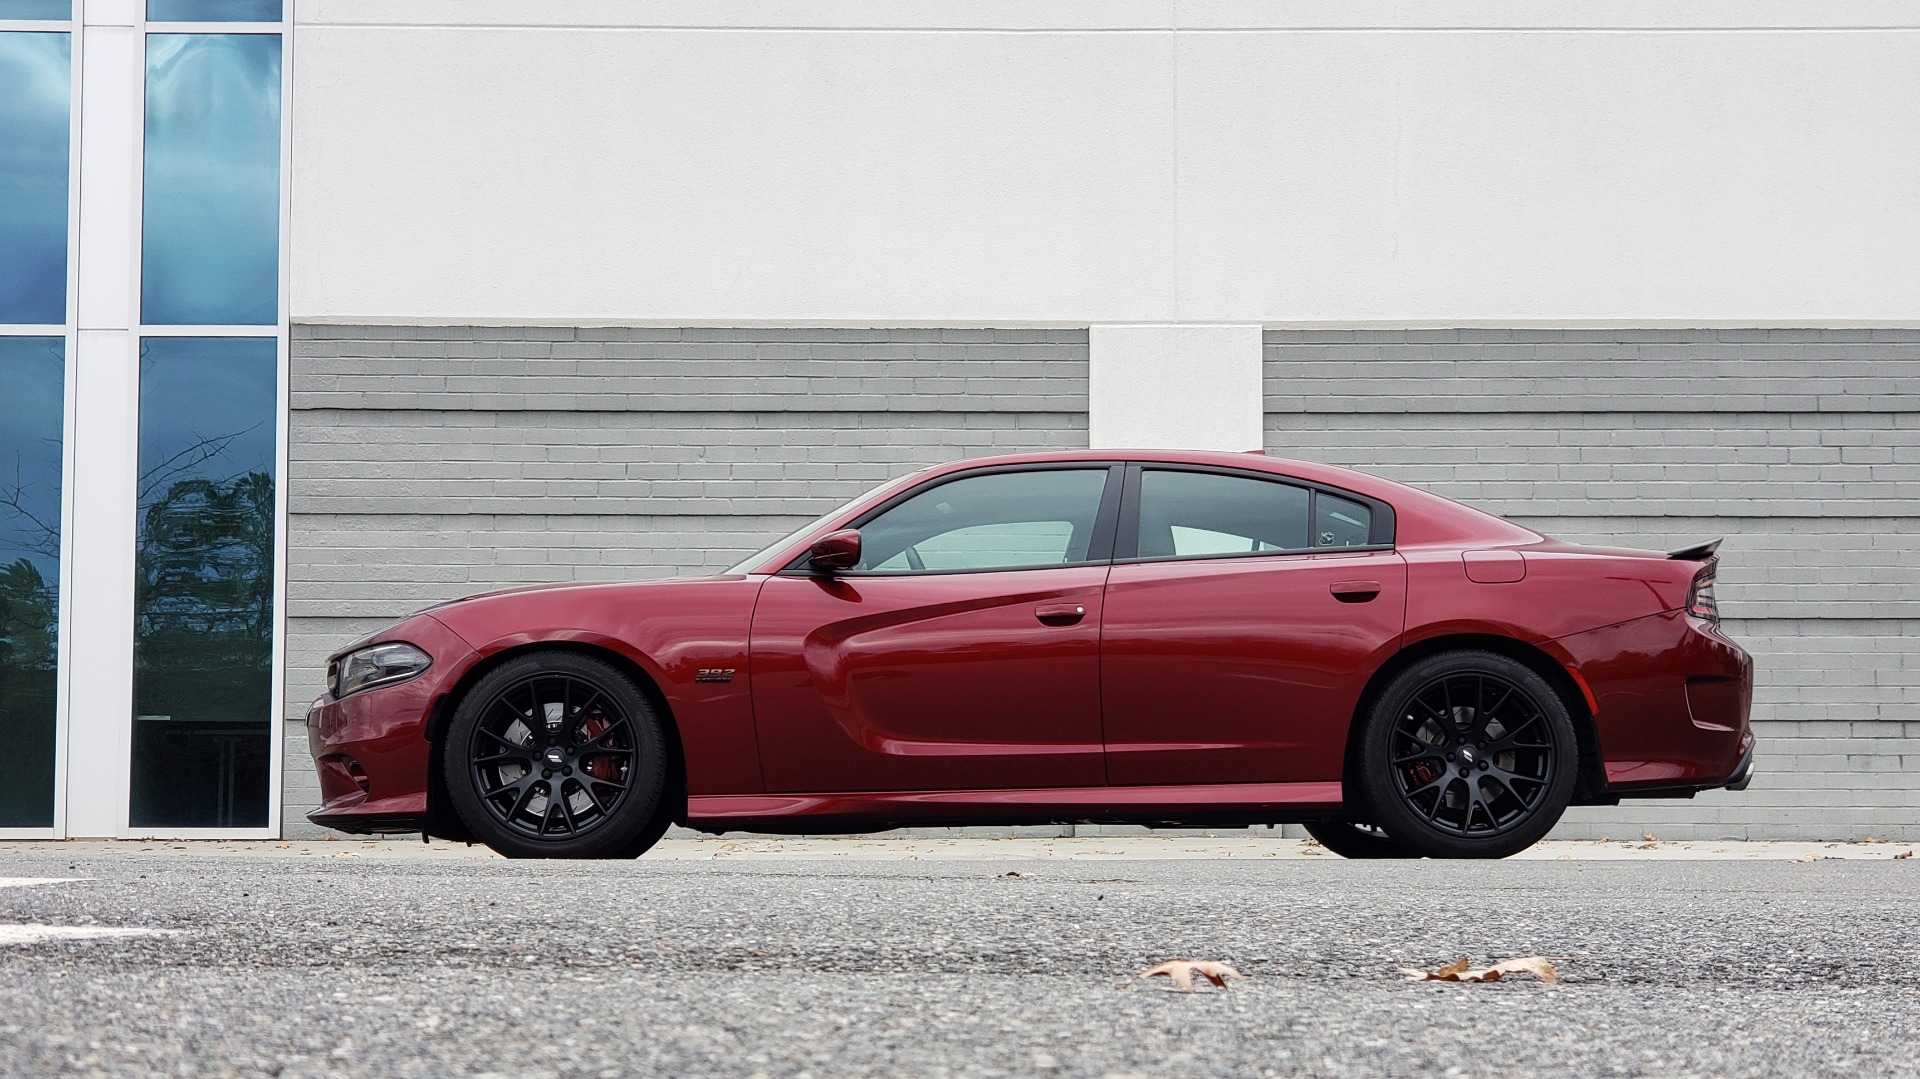 Used 2018 Dodge CHARGER R/T SCAT PACK / 6.4L 485HP / 8-SPD AUTO / HEATED / REARVIEW for sale Sold at Formula Imports in Charlotte NC 28227 3